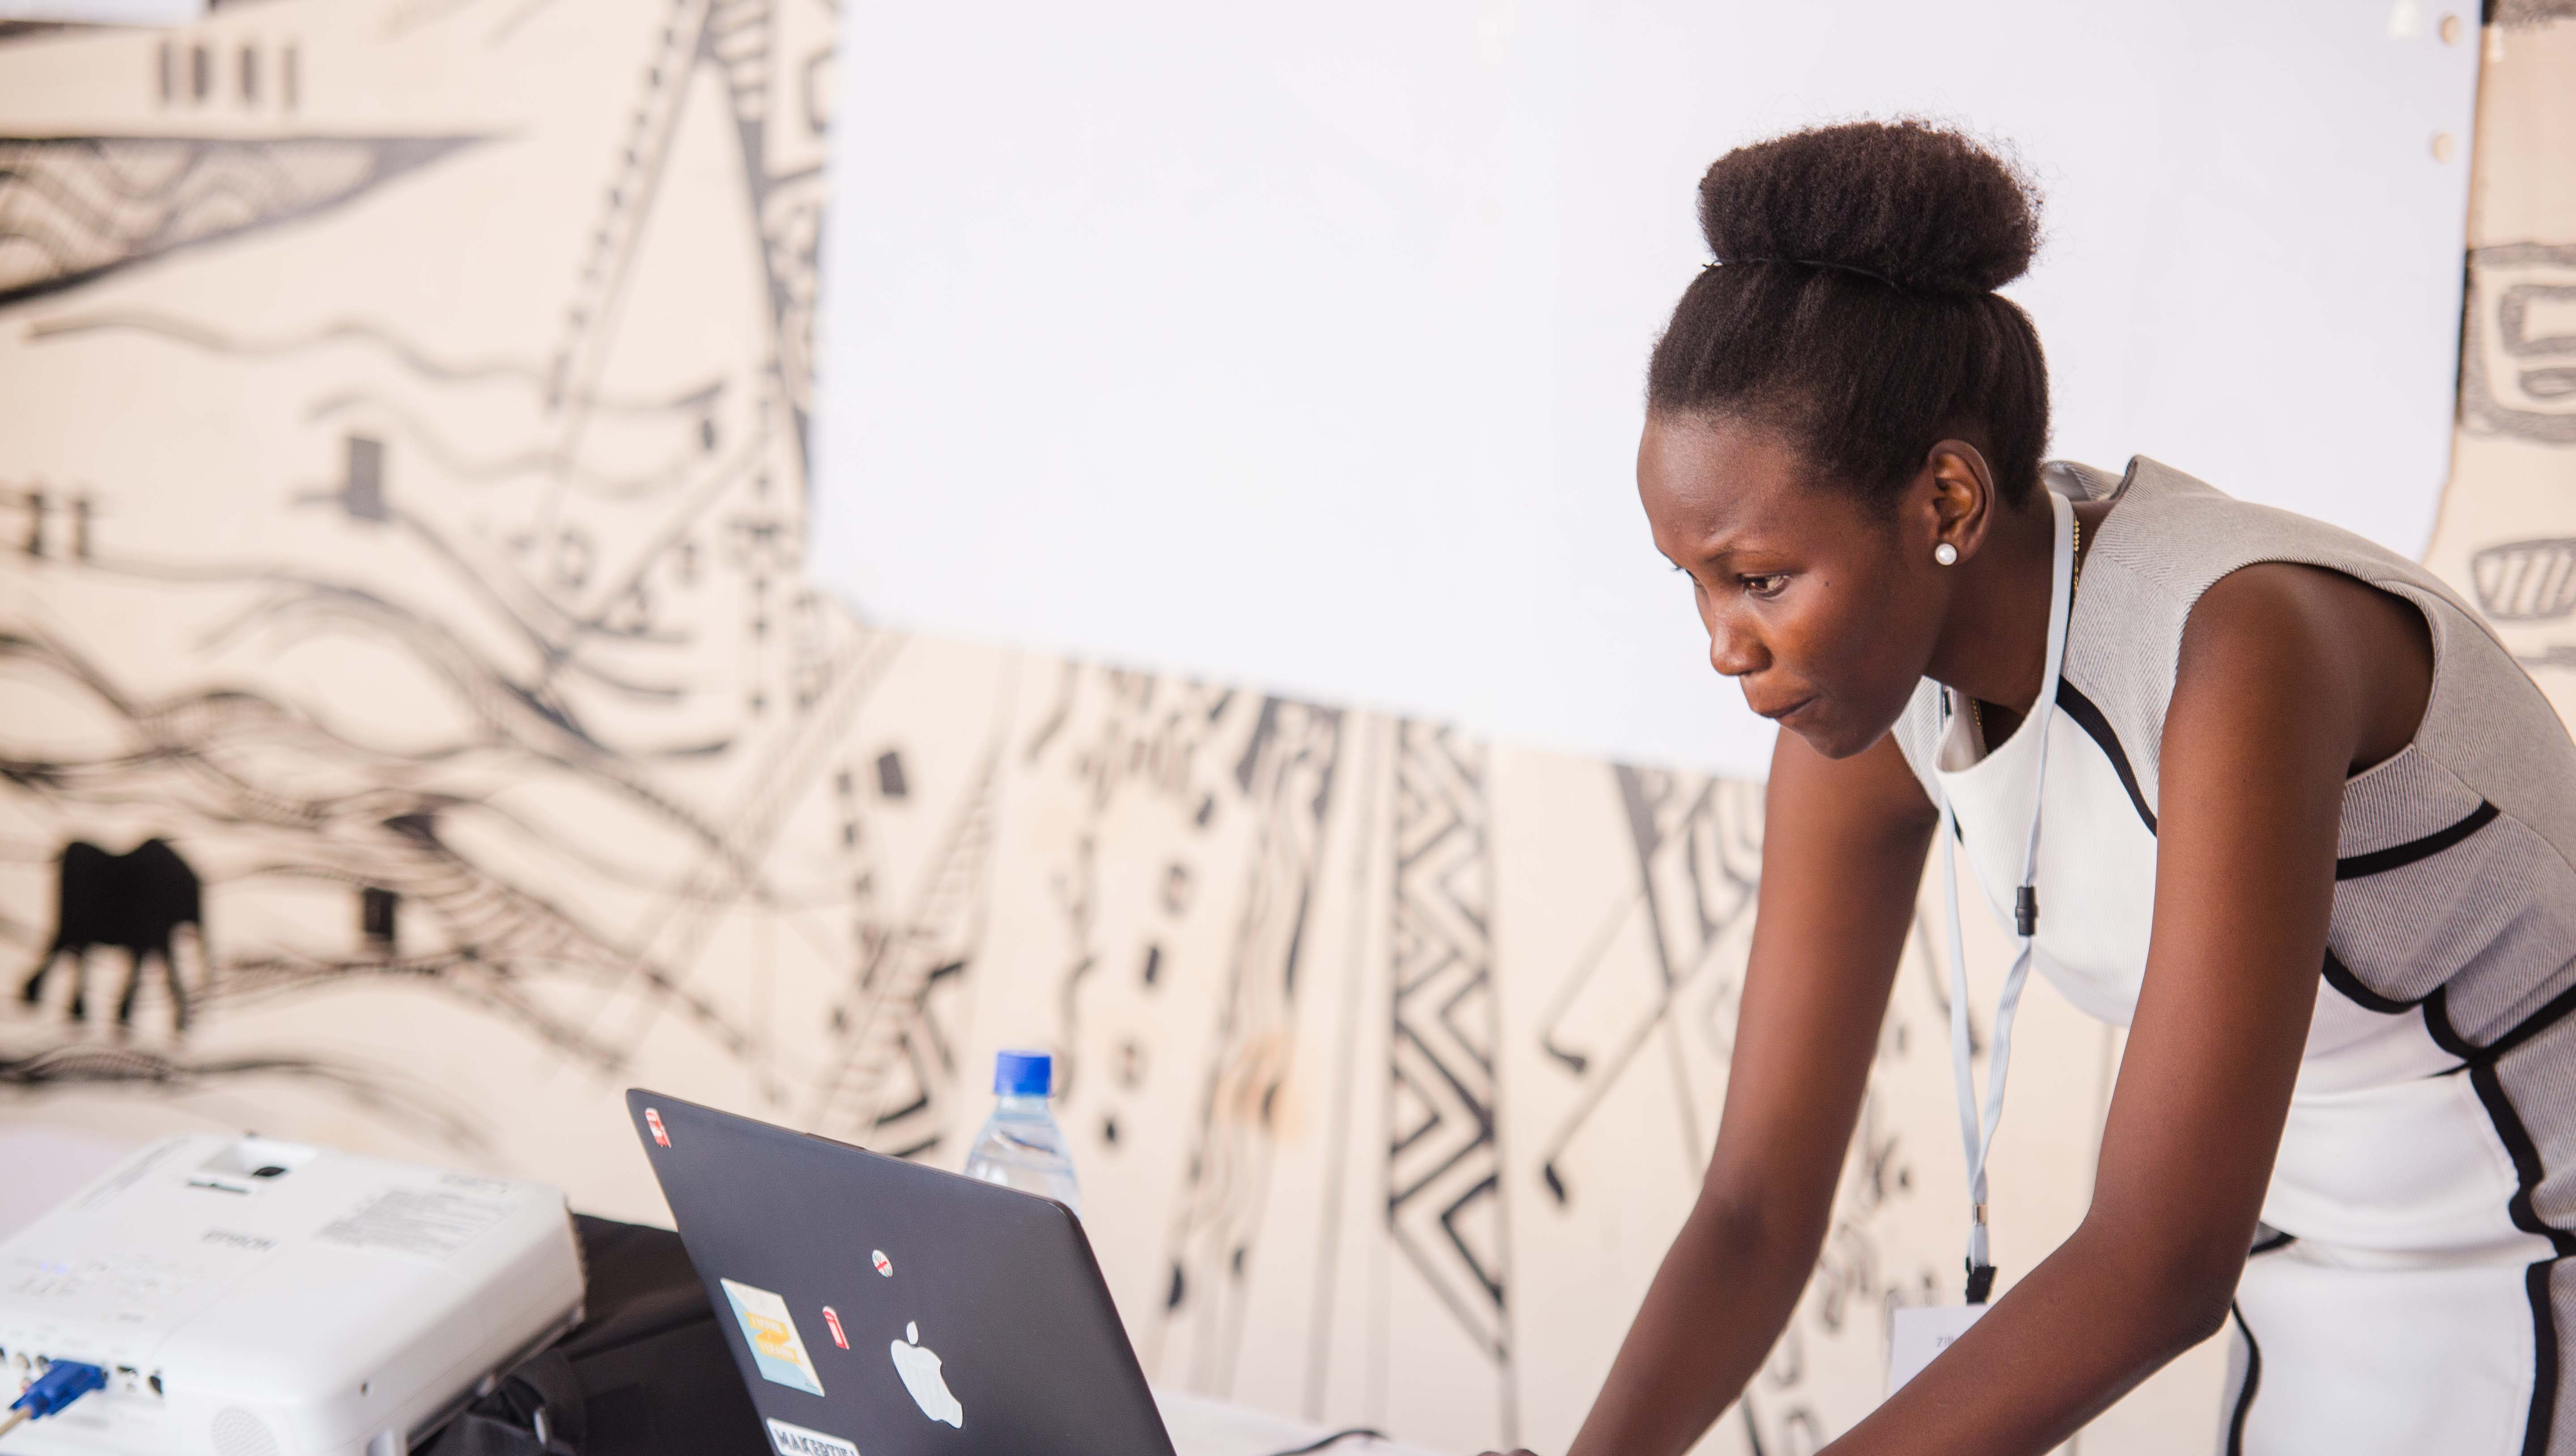 Black woman in a white dress leans over her laptop